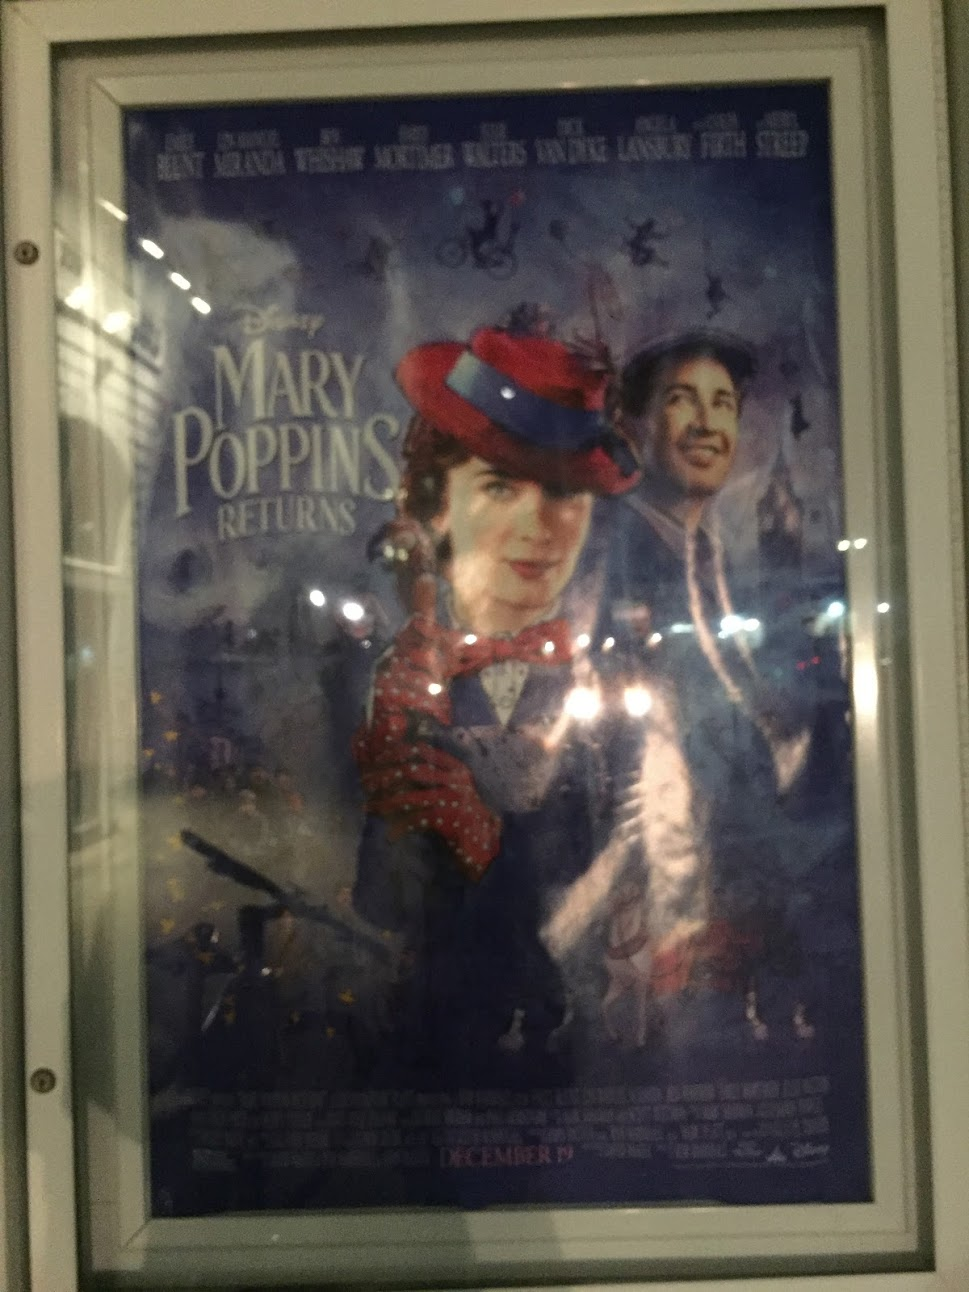 The movie's poster hangs outside Patriot Cinemas.